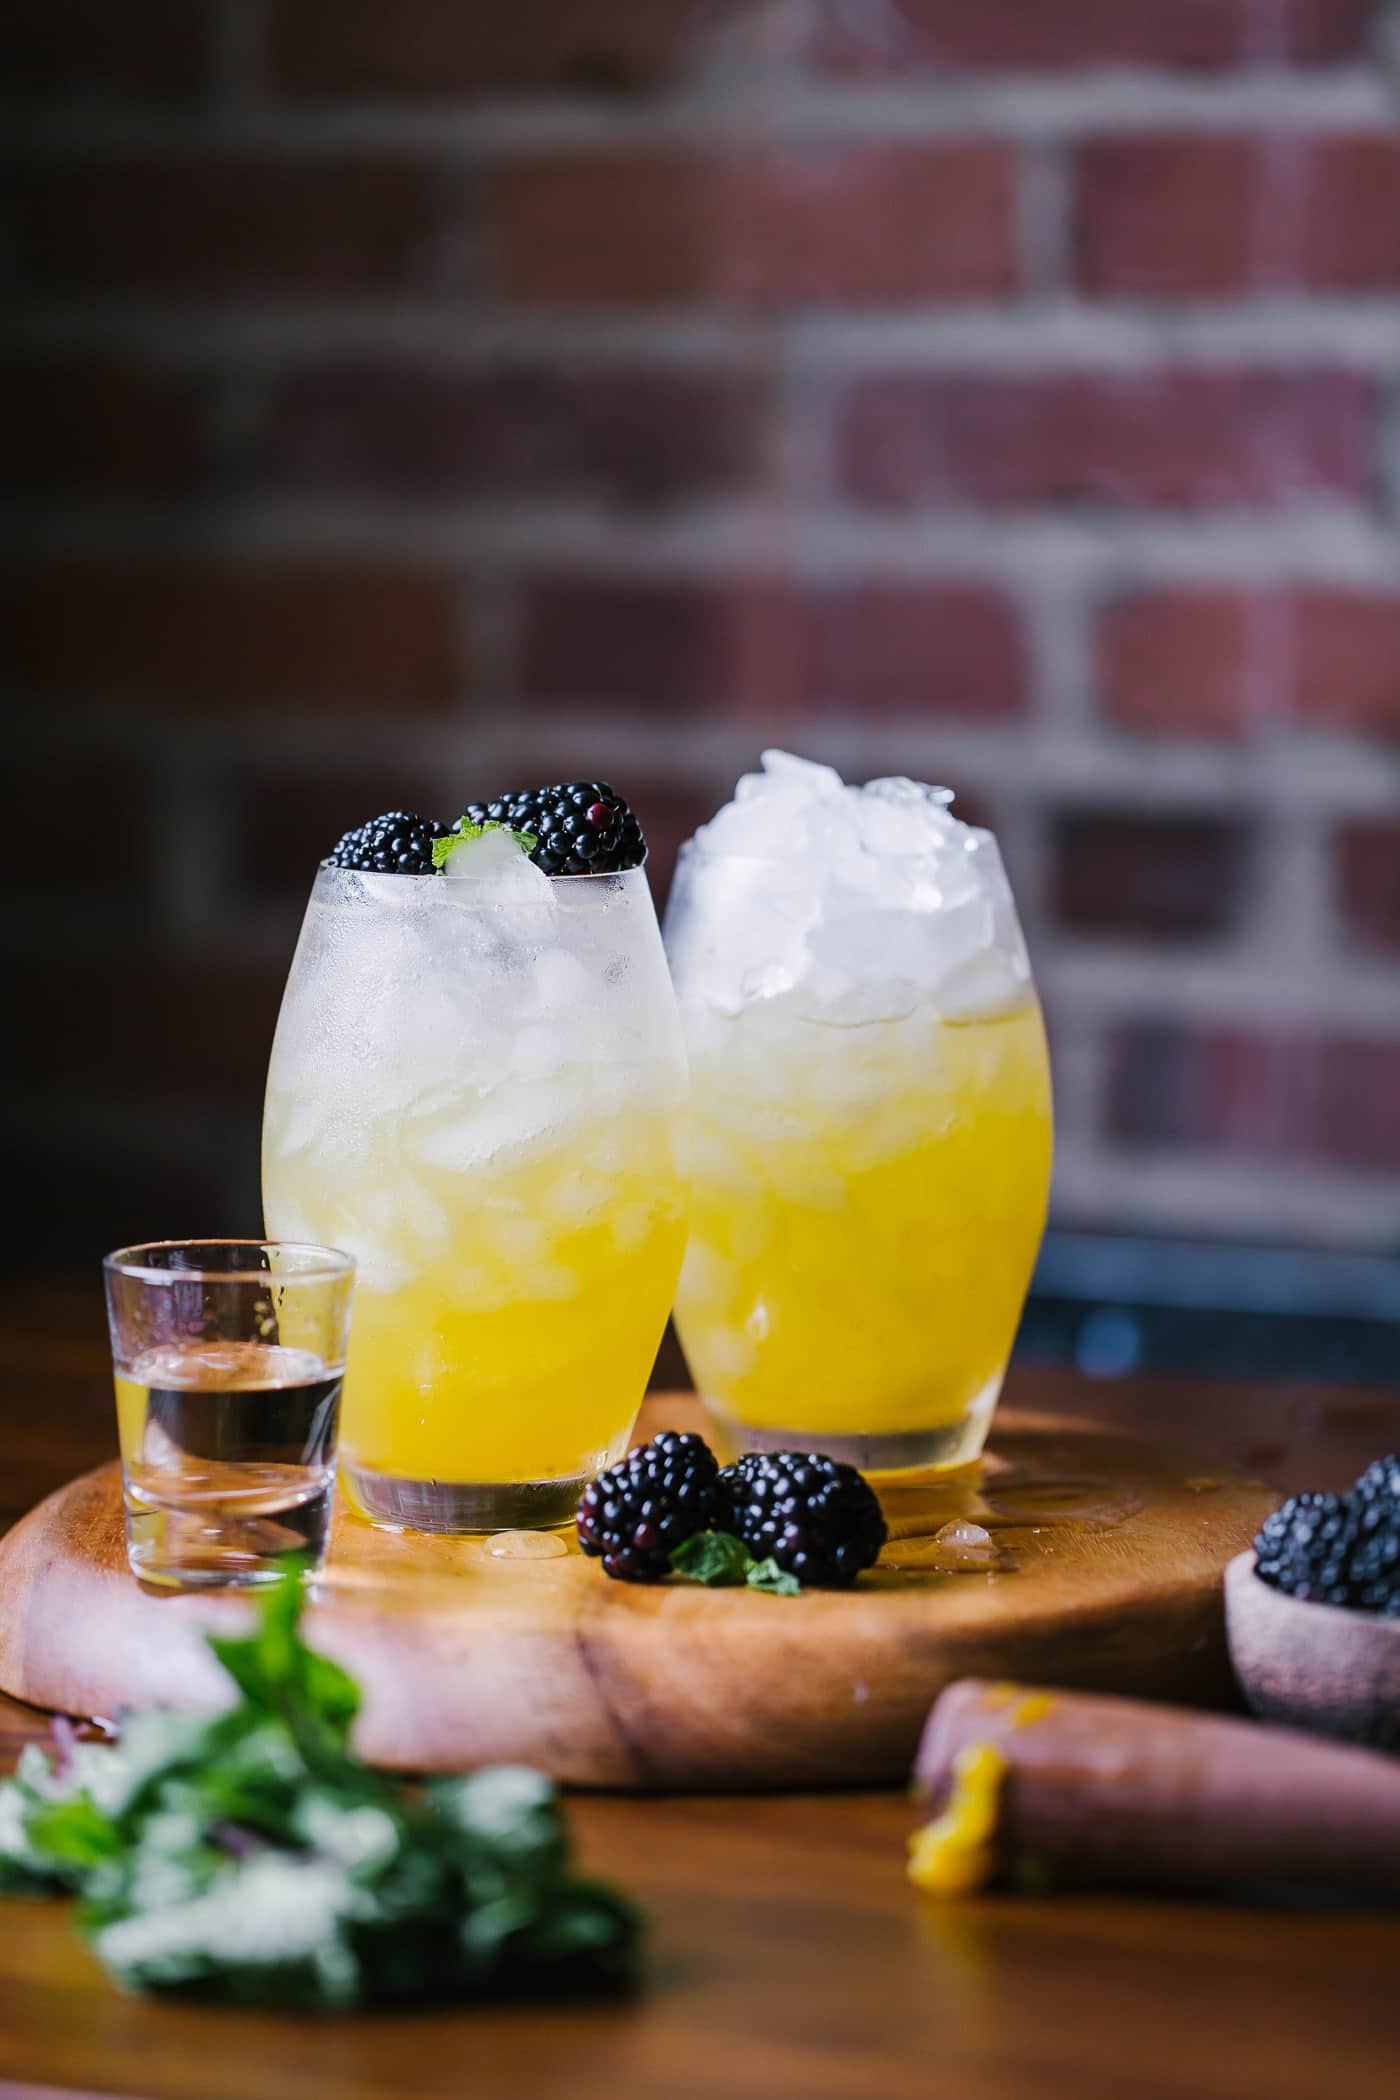 Two glass of mango and blackberry vodka cooler garnished with fresh blackberries photographed side by side  from the front view.